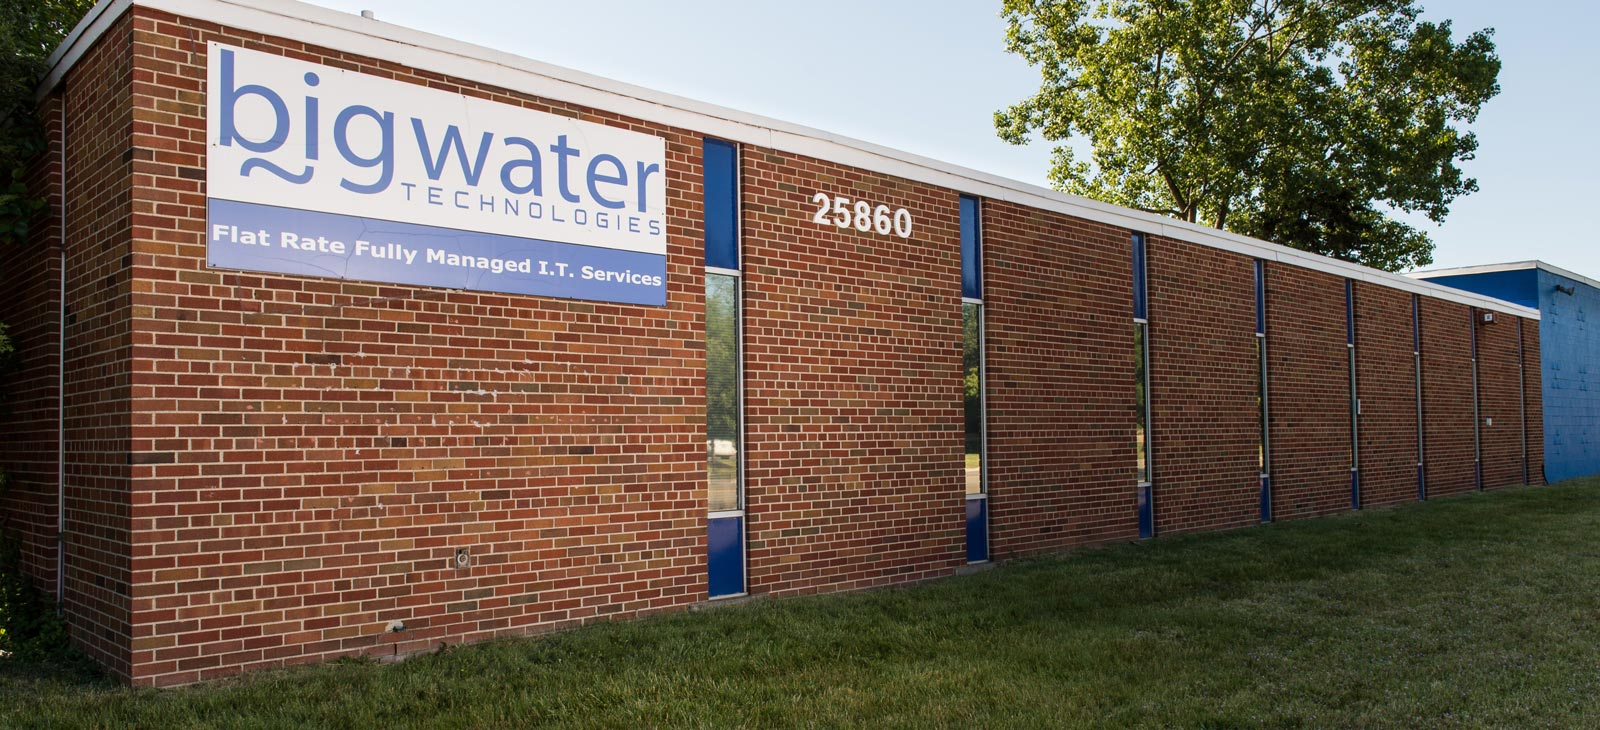 big water technologies building